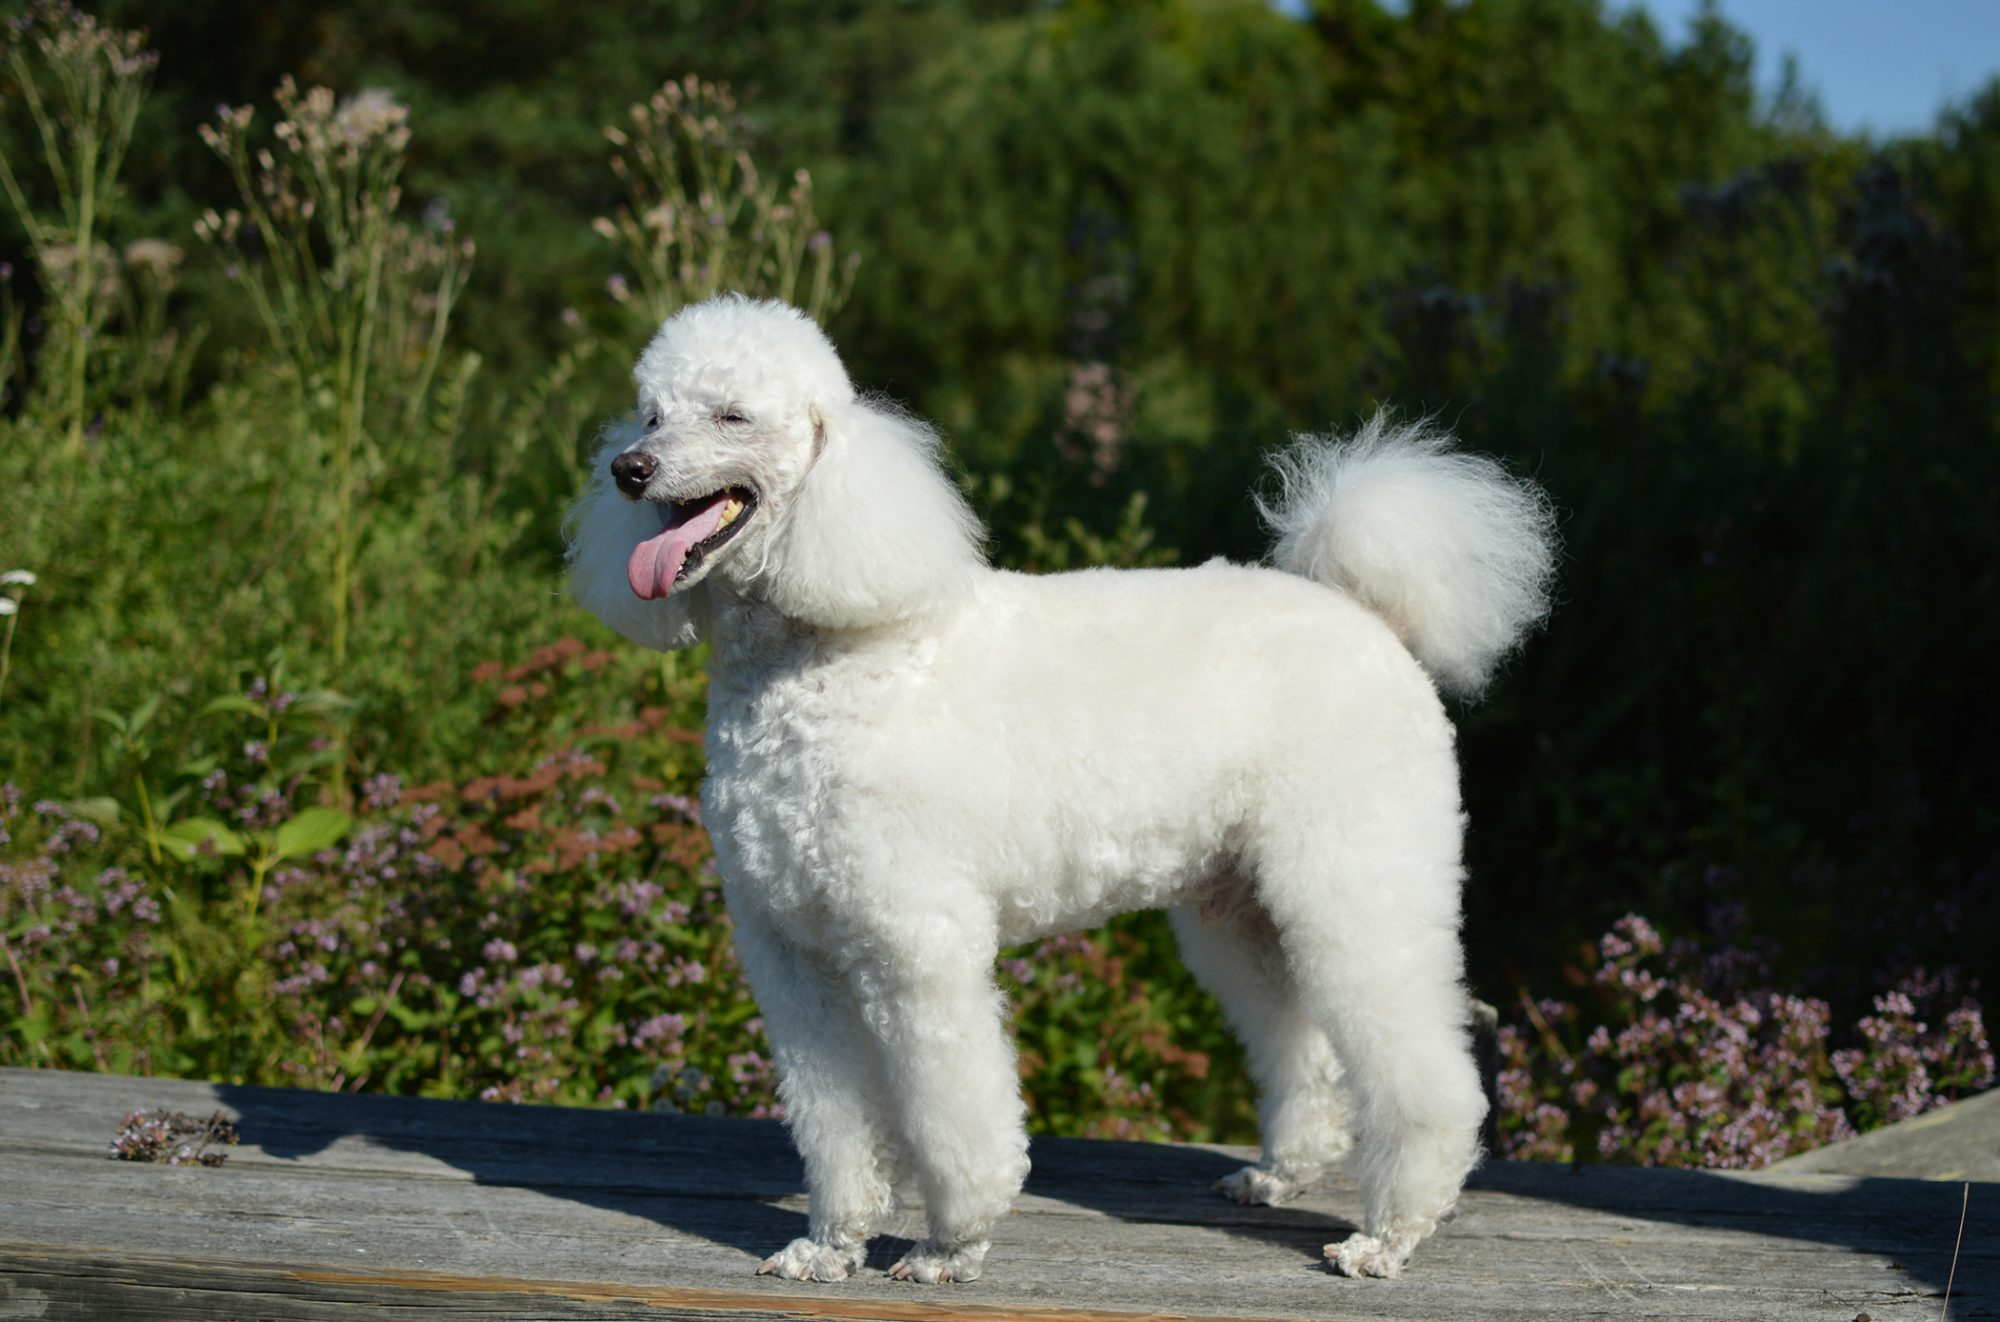 Senior standard poodle with white fur is standing on a wooden bench